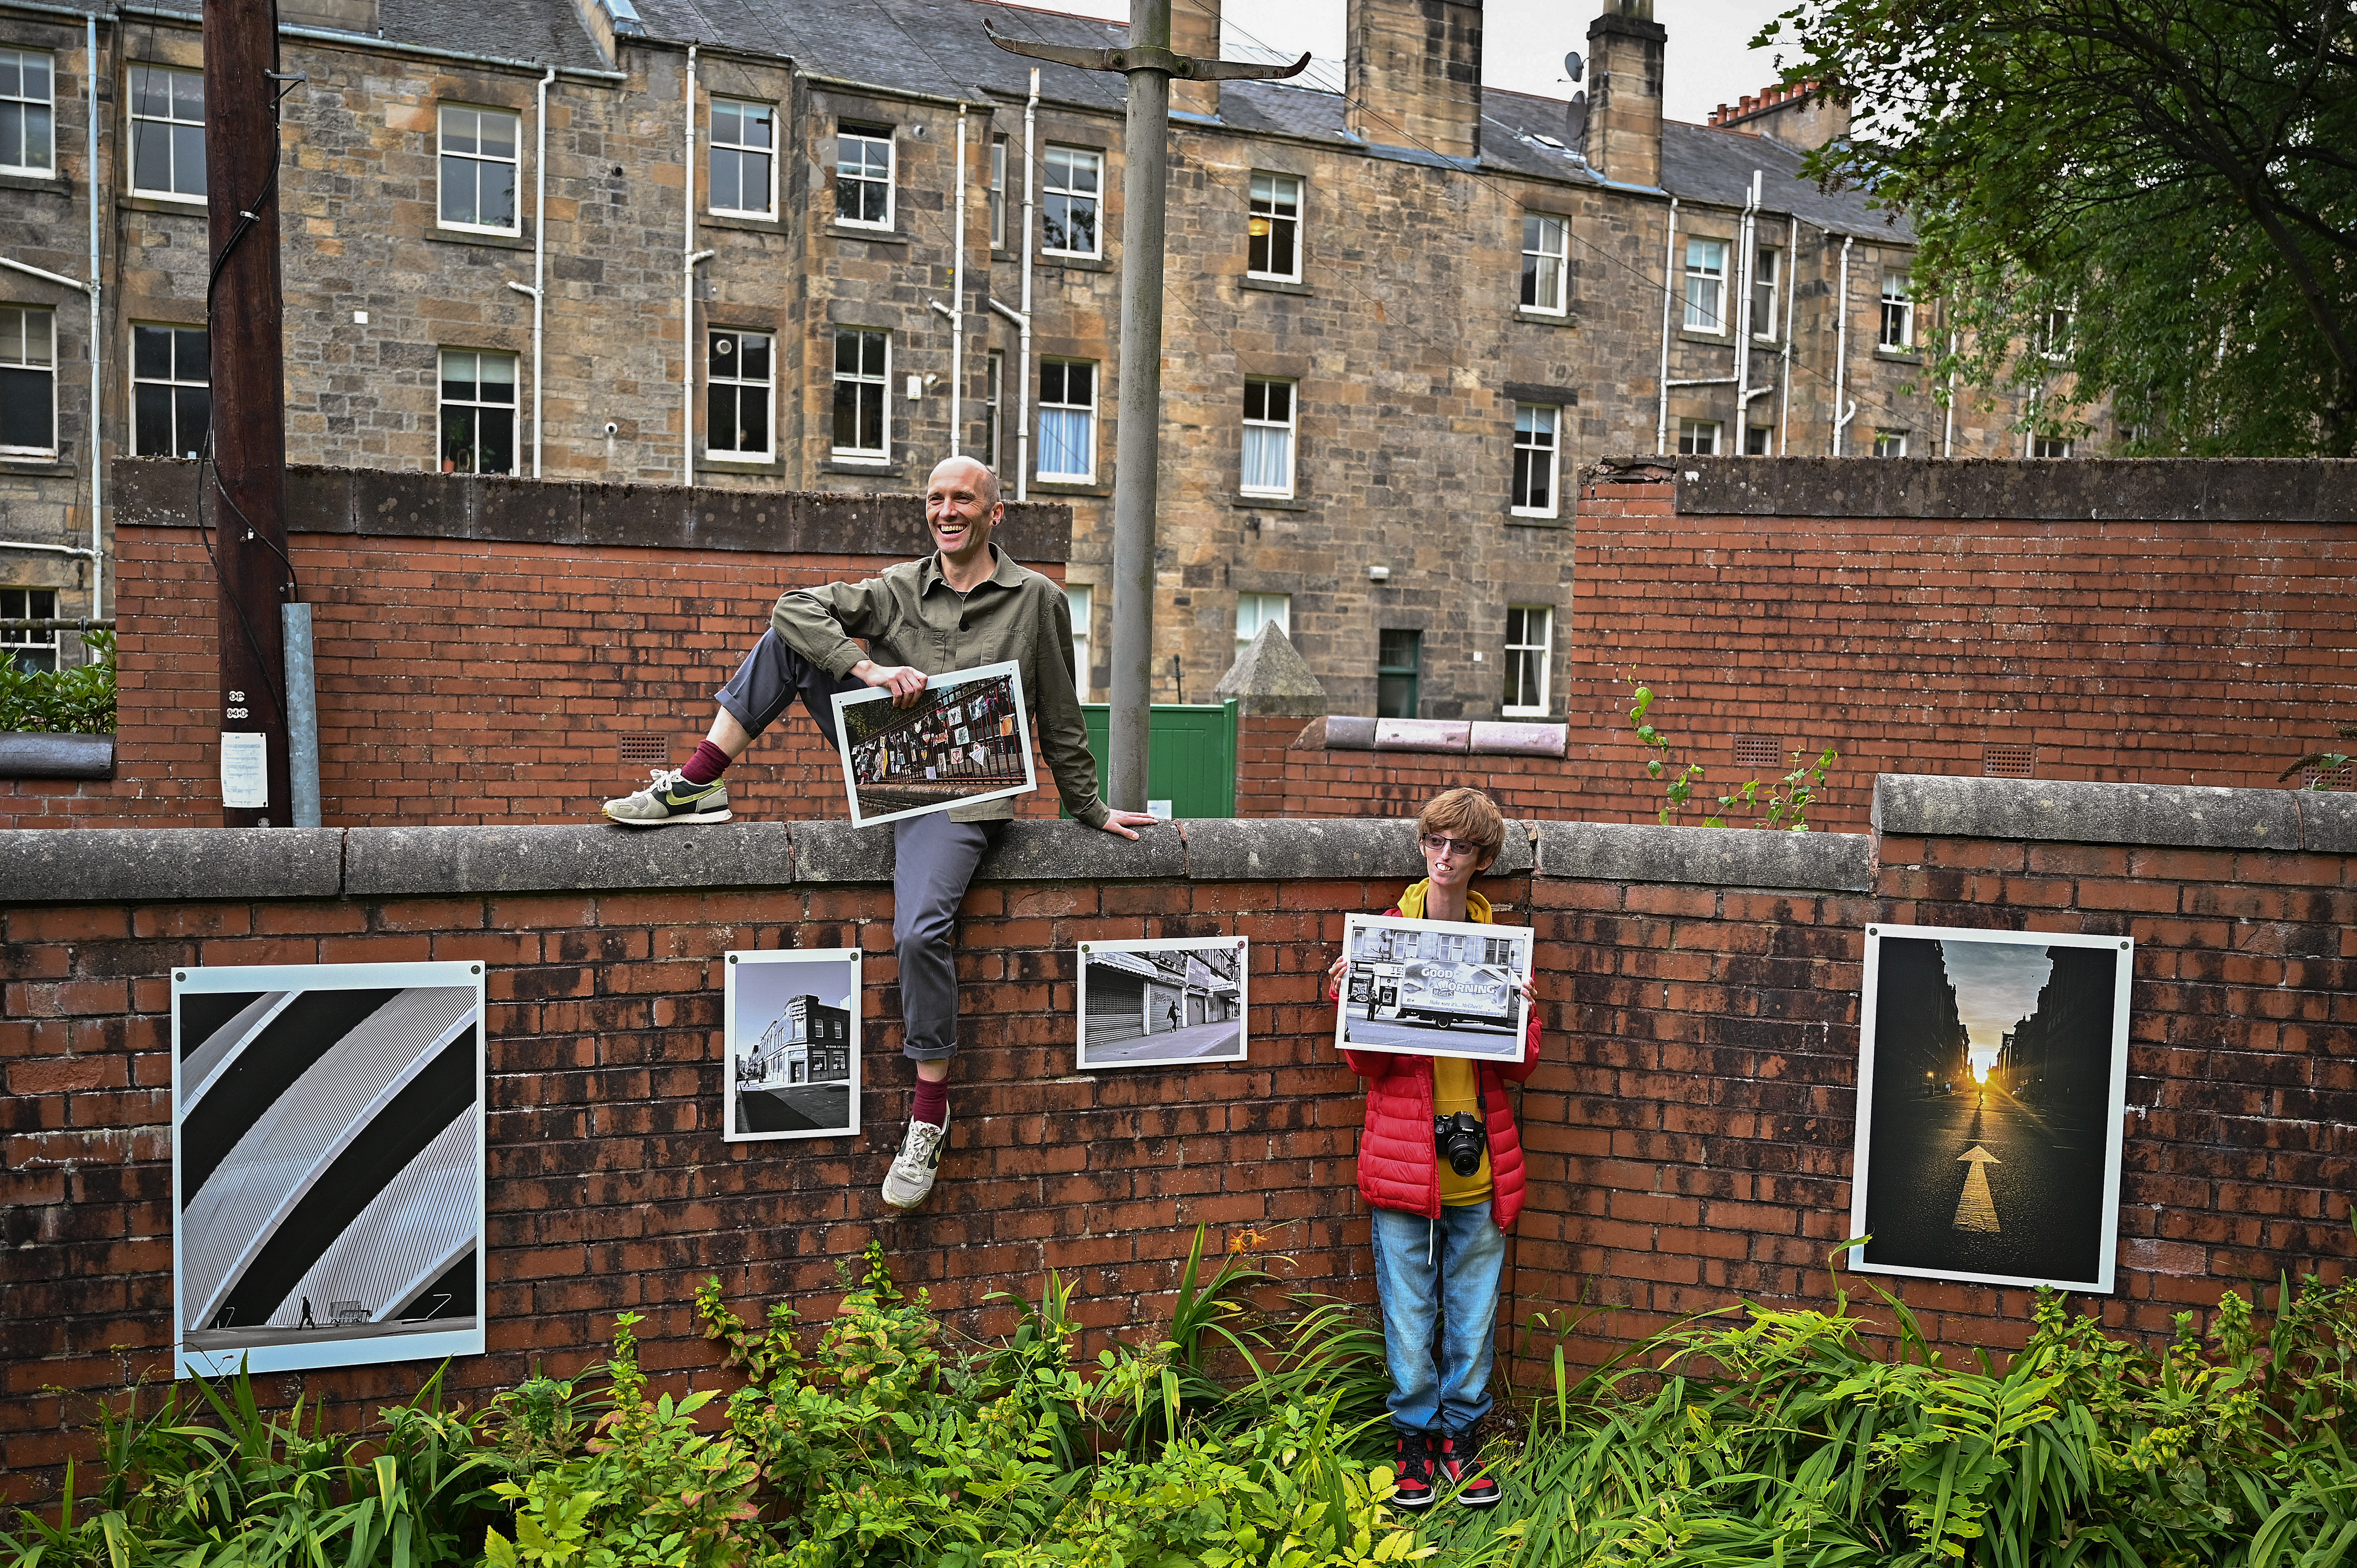 """<p>GLASGOW, SCOTLAND - SEPTEMBER 17: Brian Hartley and Dylan Lombard (R) pose beside their photographic exhibition in a tenement garden on September 17, 2021 in Glasgow, Scotland. """"Stills of a Lockdown City"""" features images taken during the 2020 coronavirus lockdown by Glasgow-based artist Brian Hartley and 18-year-old Dylan Lombard, and aims to offer """"a perspective that allows us to make more sense of the world"""". It will take place on September 18 and 19, 2021. (Photo by Jeff J Mitchell/Getty Images)</p>"""